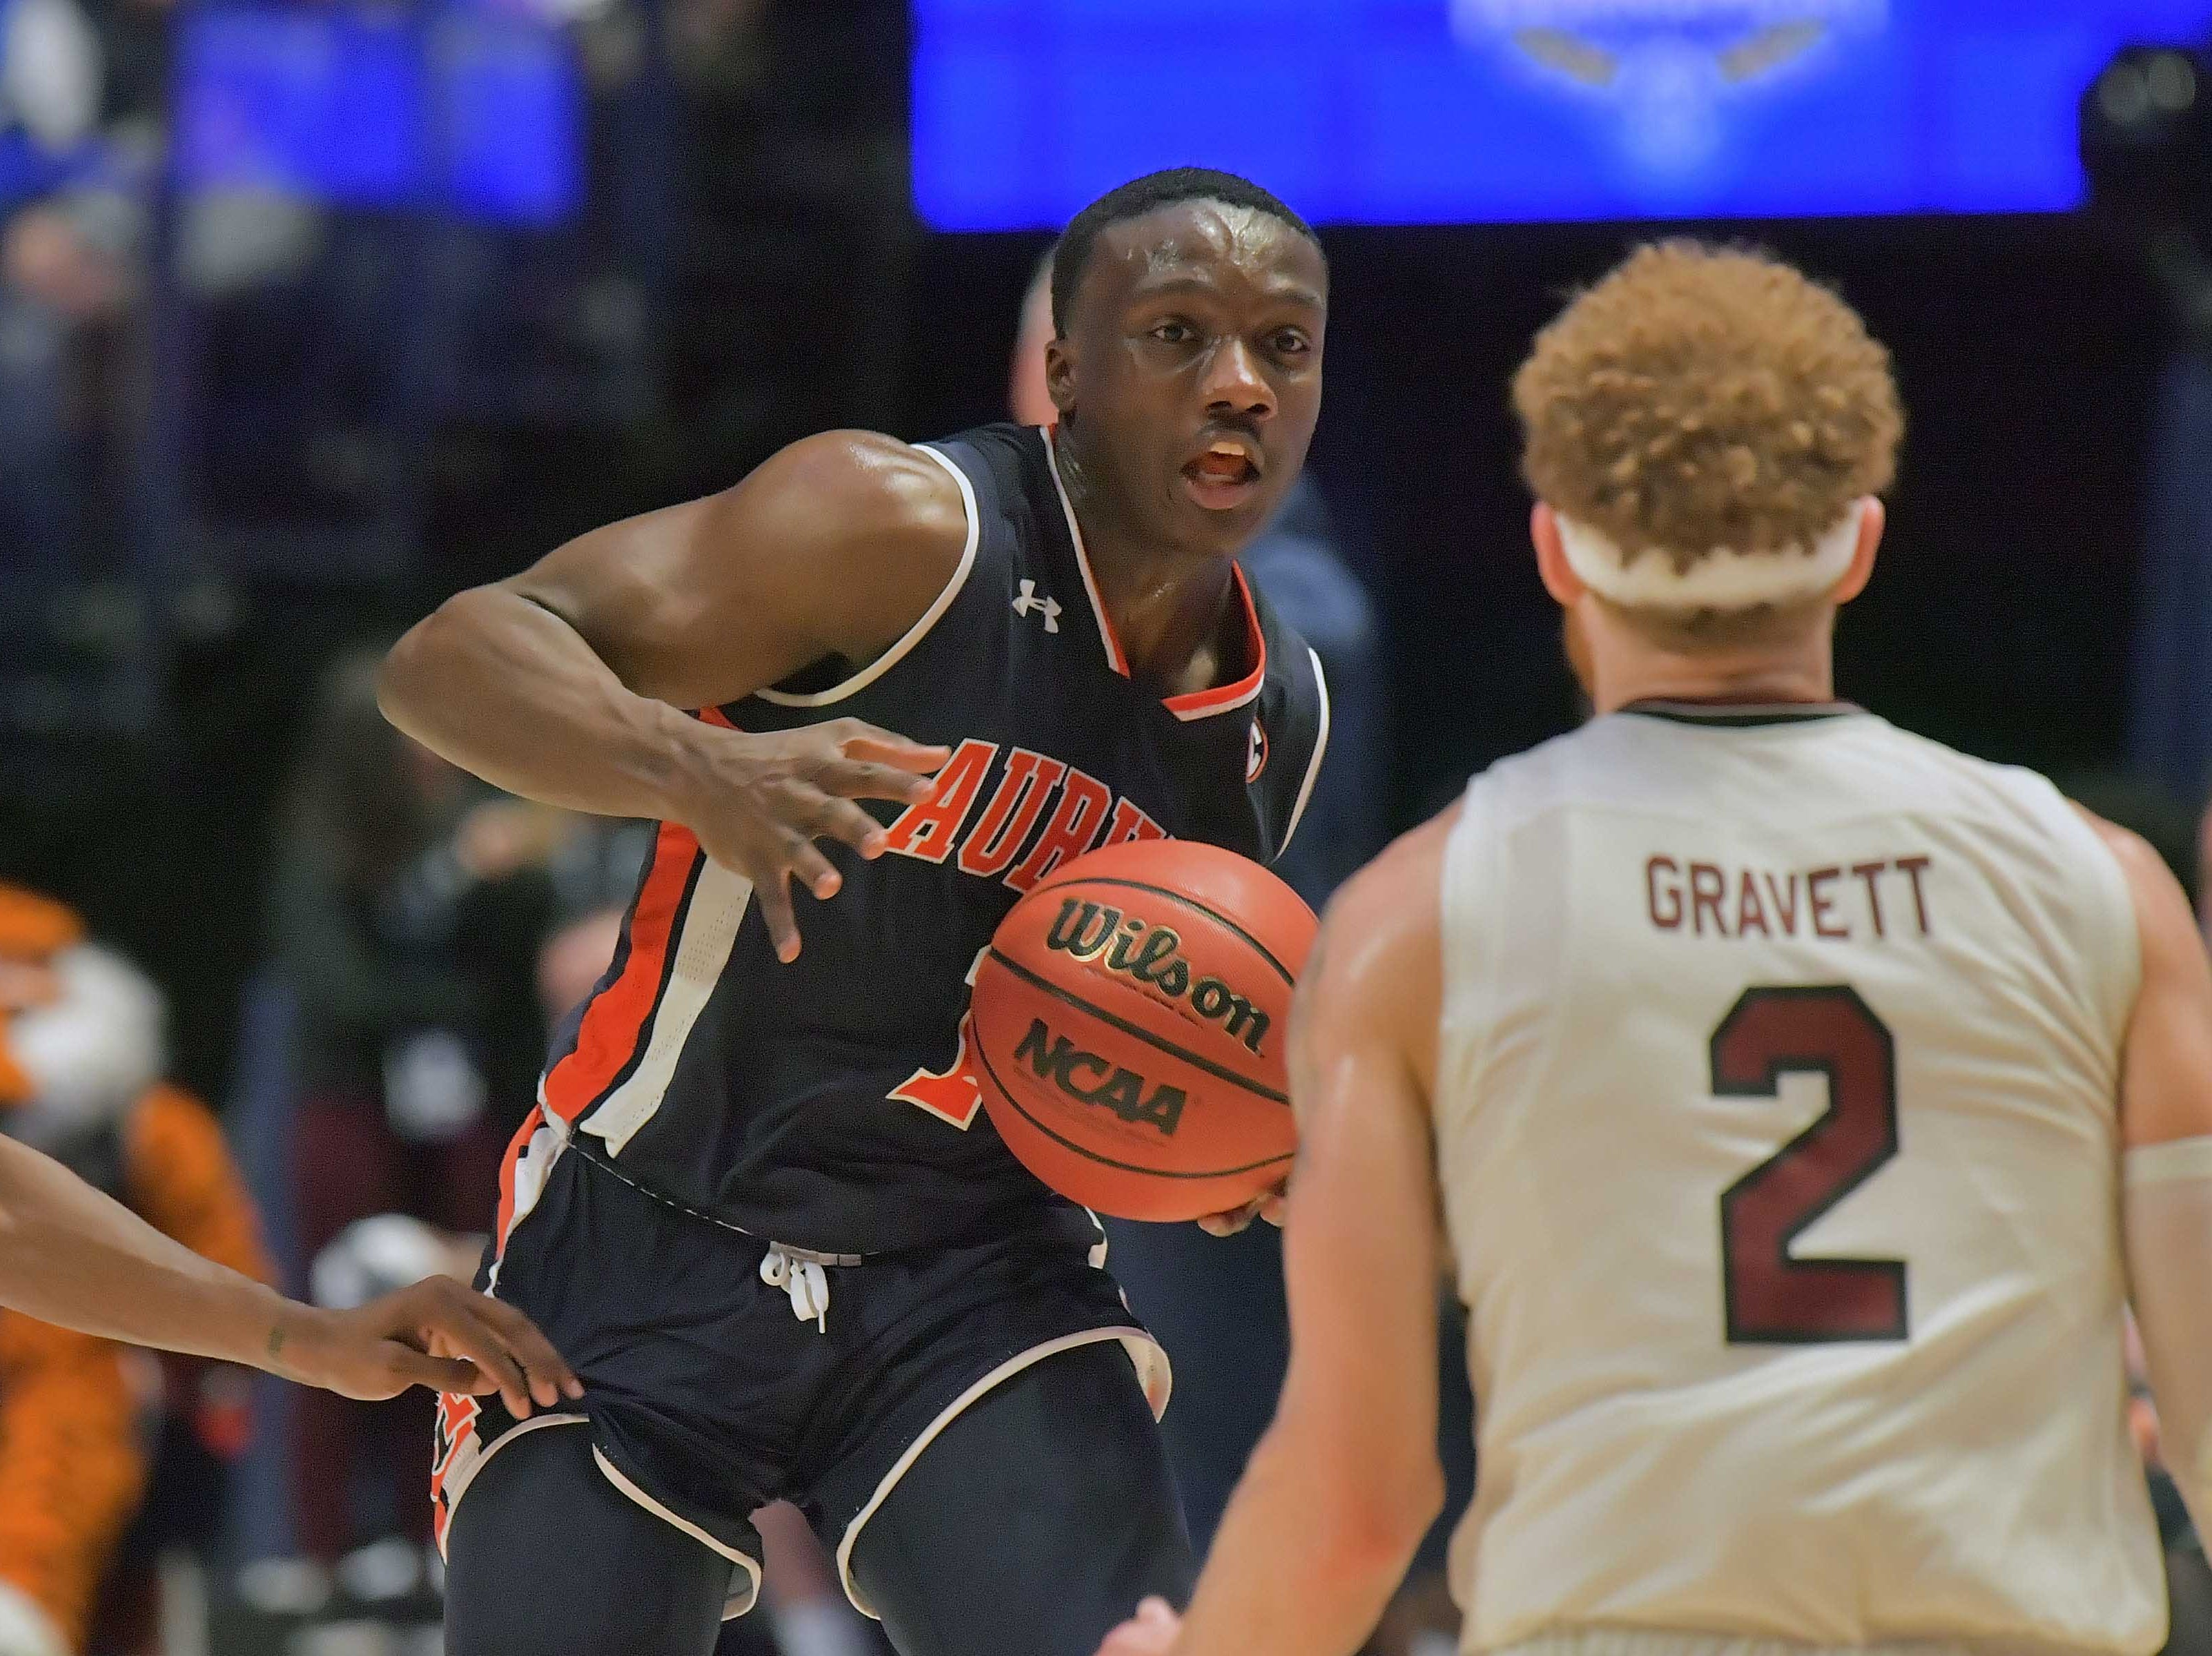 Mar 15, 2019; Nashville, TN, USA; Auburn Tigers guard Jared Harper (1) drives against South Carolina Gamecocks guard Hassani Gravett (2) during the first half of game eight in the SEC conference tournament at Bridgestone Arena. Mandatory Credit: Jim Brown-USA TODAY Sports